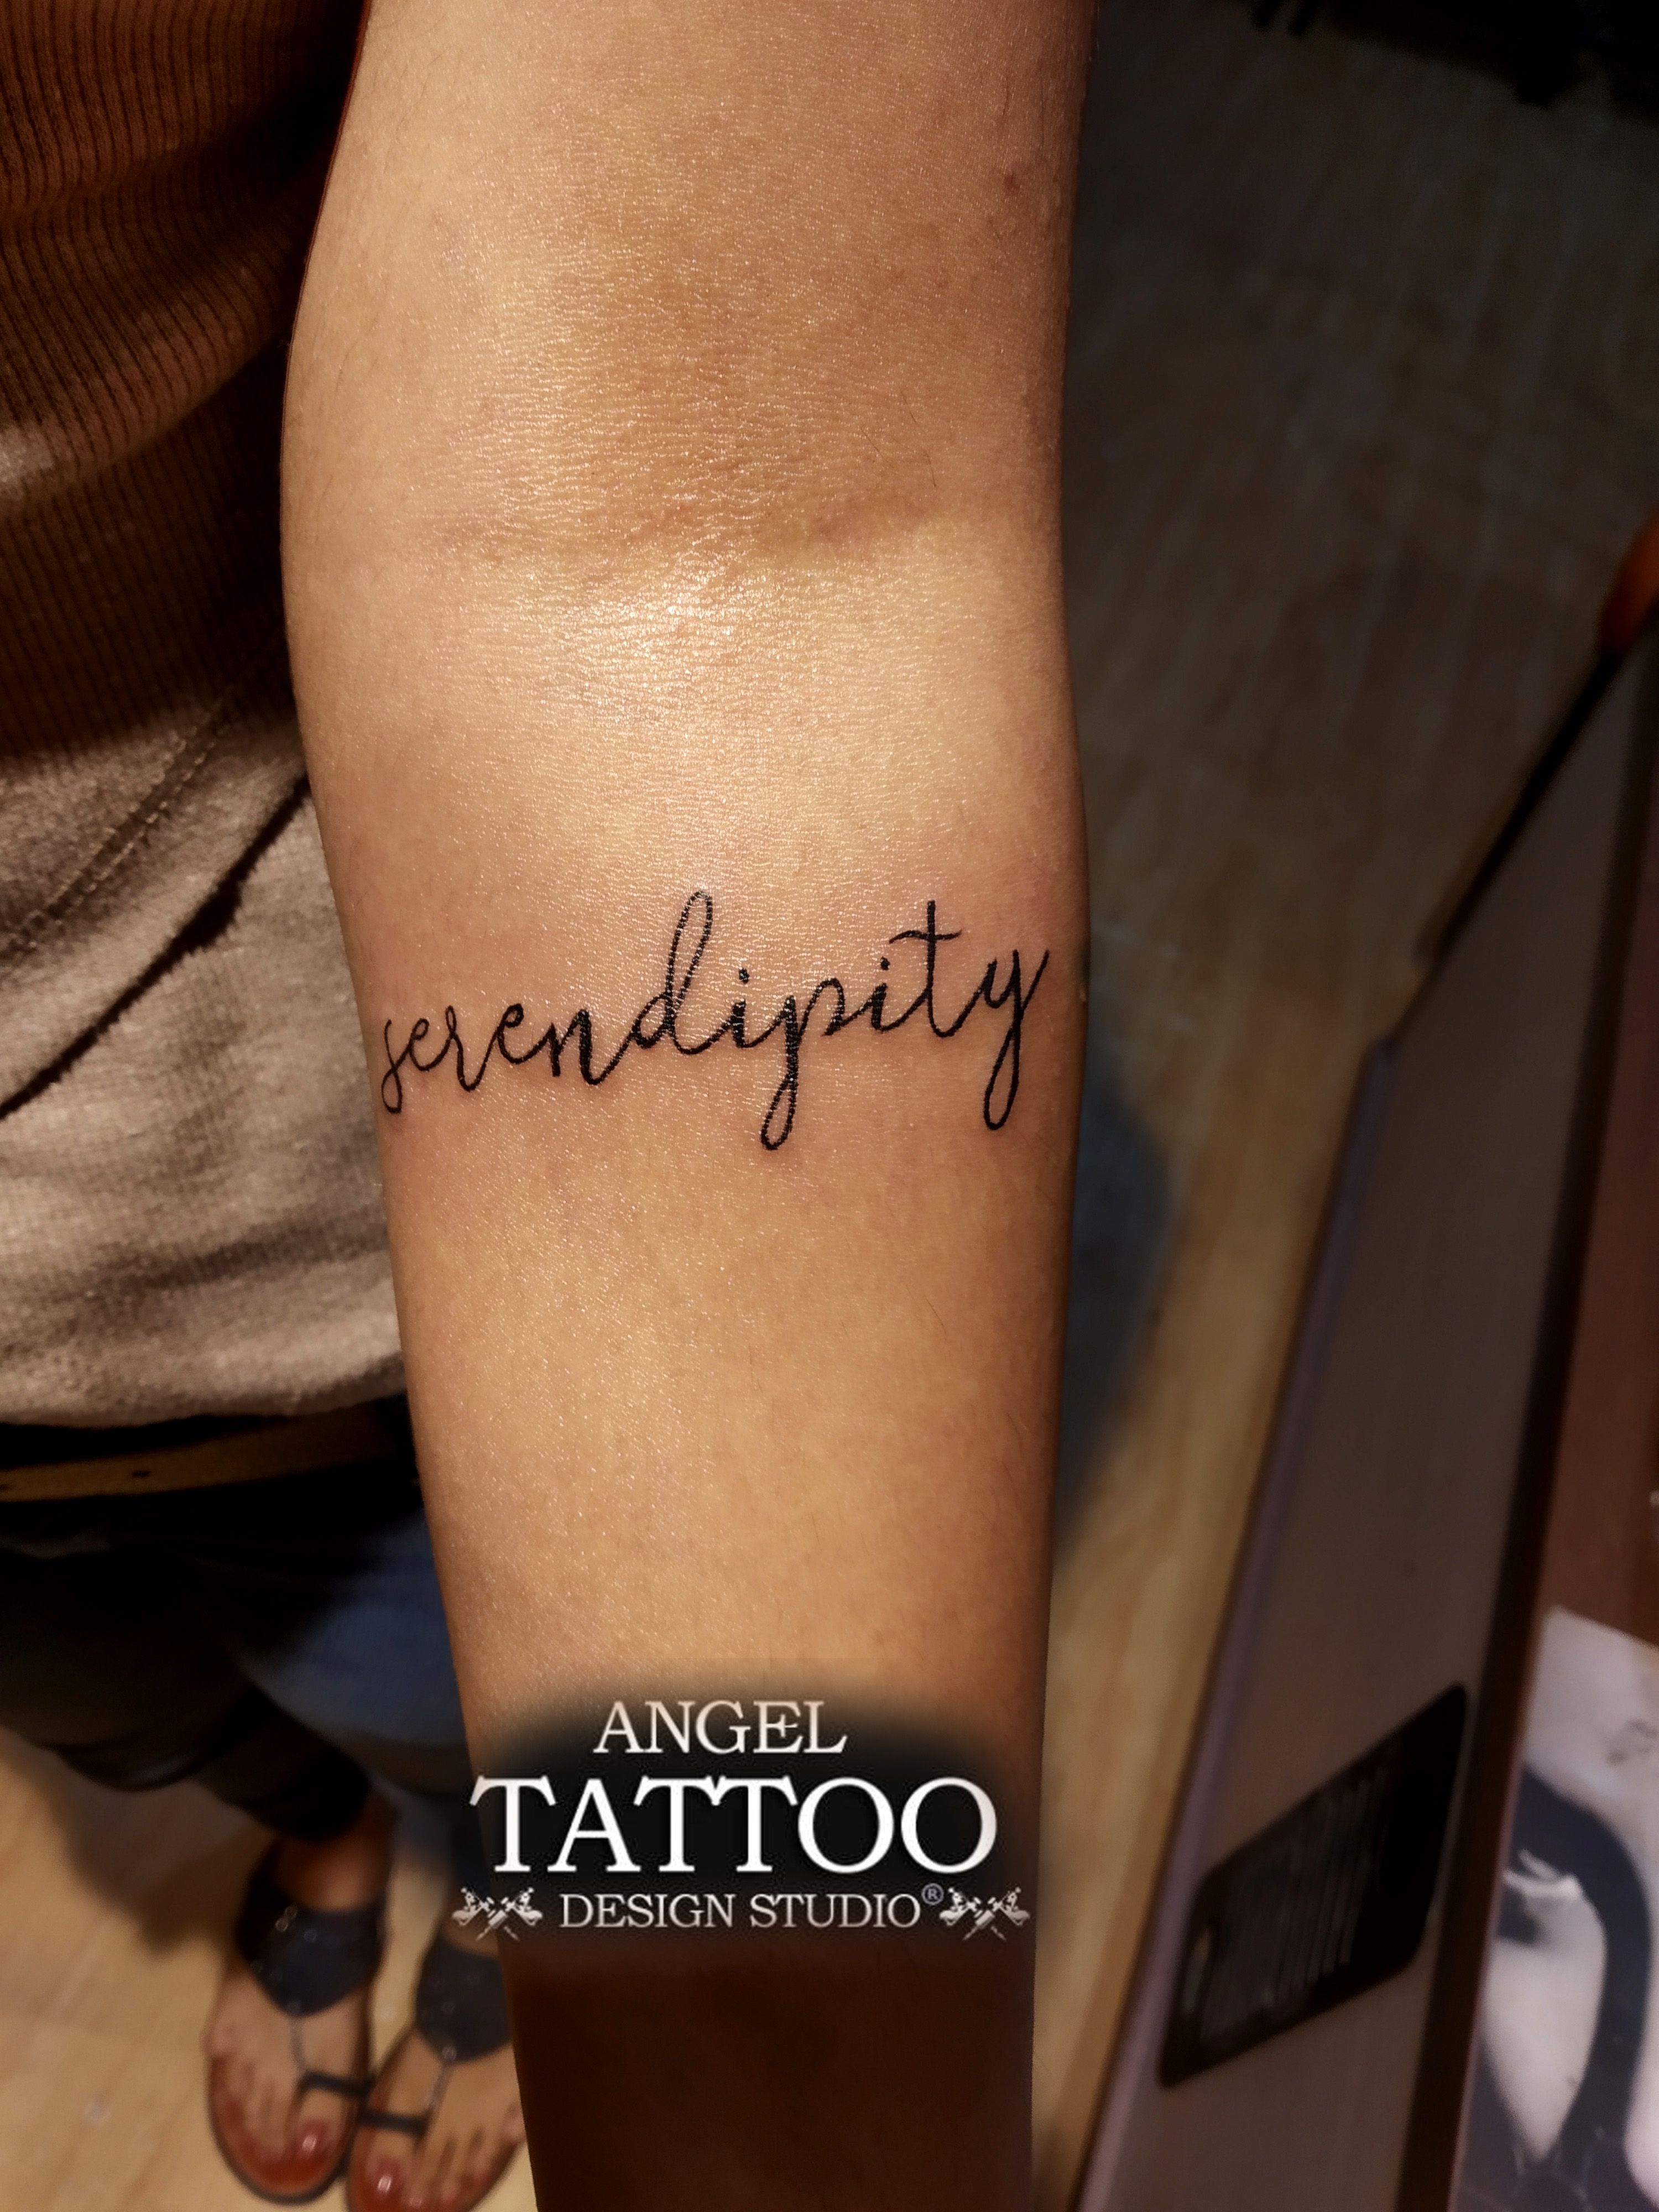 2a742c9023391 Serendipity Tattoo made at Gurgaon shop; call 8826602967 for appointment  #serendipitytattoo #tattoofonts